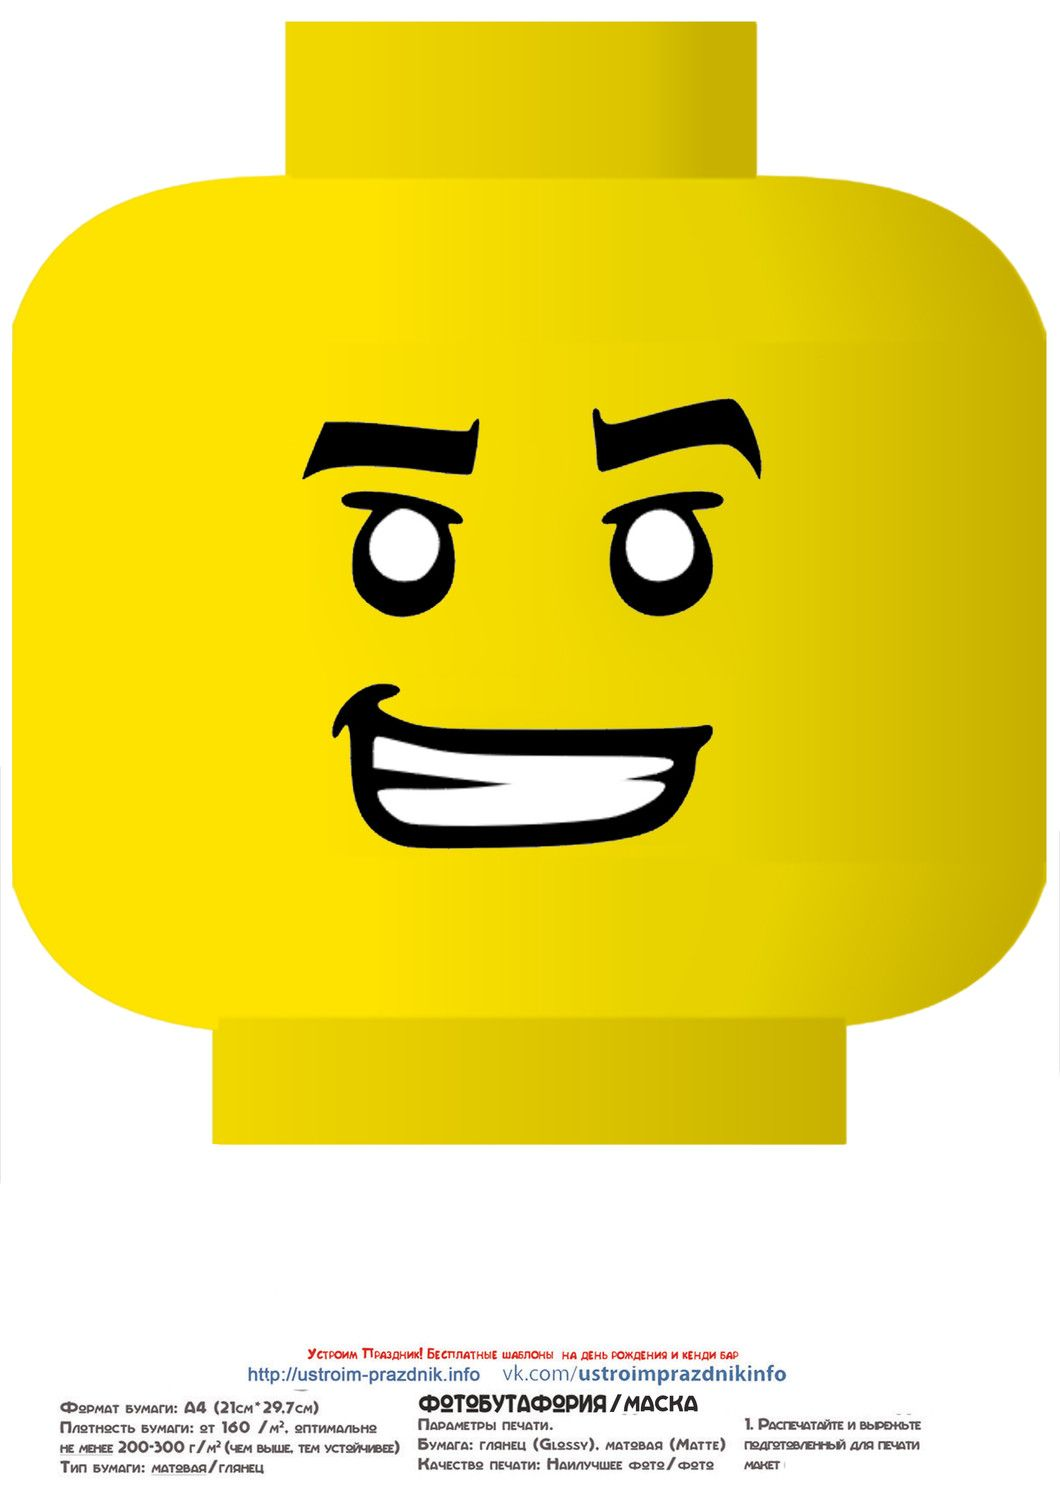 image about Lego Face Printable identified as Фотобутафория в стиле Лего (Lego experience picture props printable